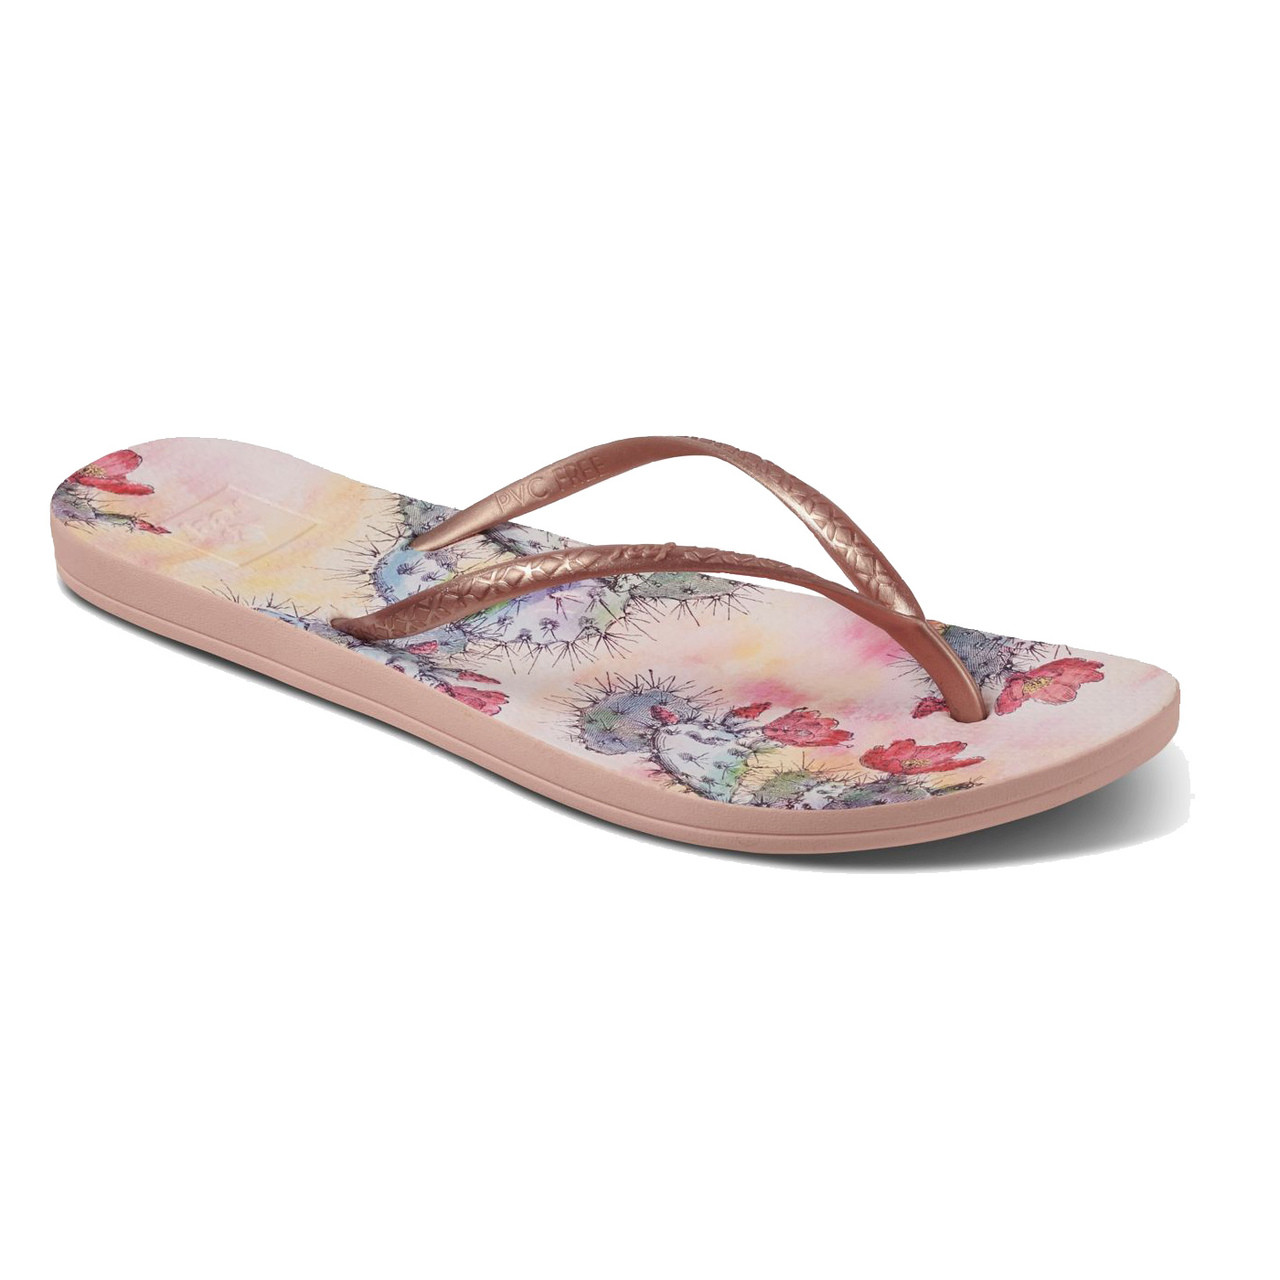 6b7d74abe7c5 Reef Women s Flip Flops - Reef Escape Lux Prints - Cactus Flower - Surf and  Dirt